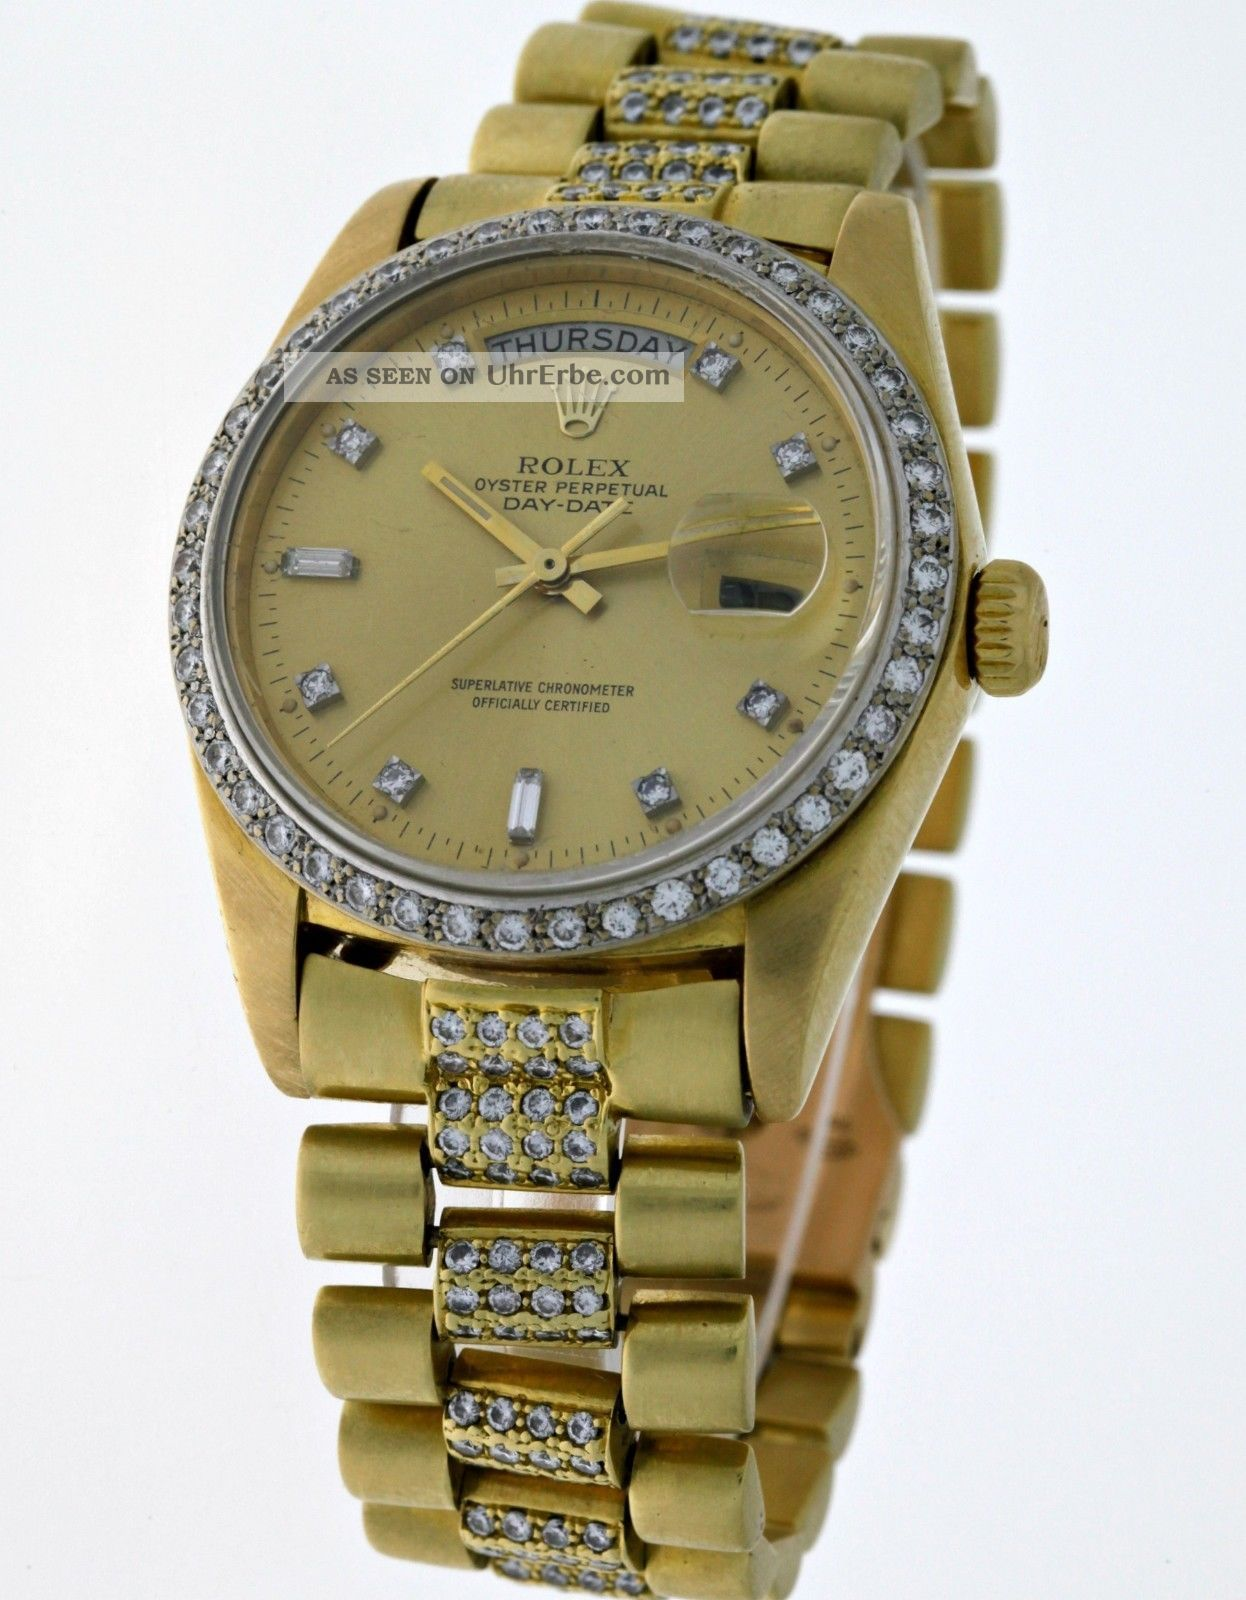 rolex oyster perpetual day date 18048 president 18kt gold mit diamanten box. Black Bedroom Furniture Sets. Home Design Ideas